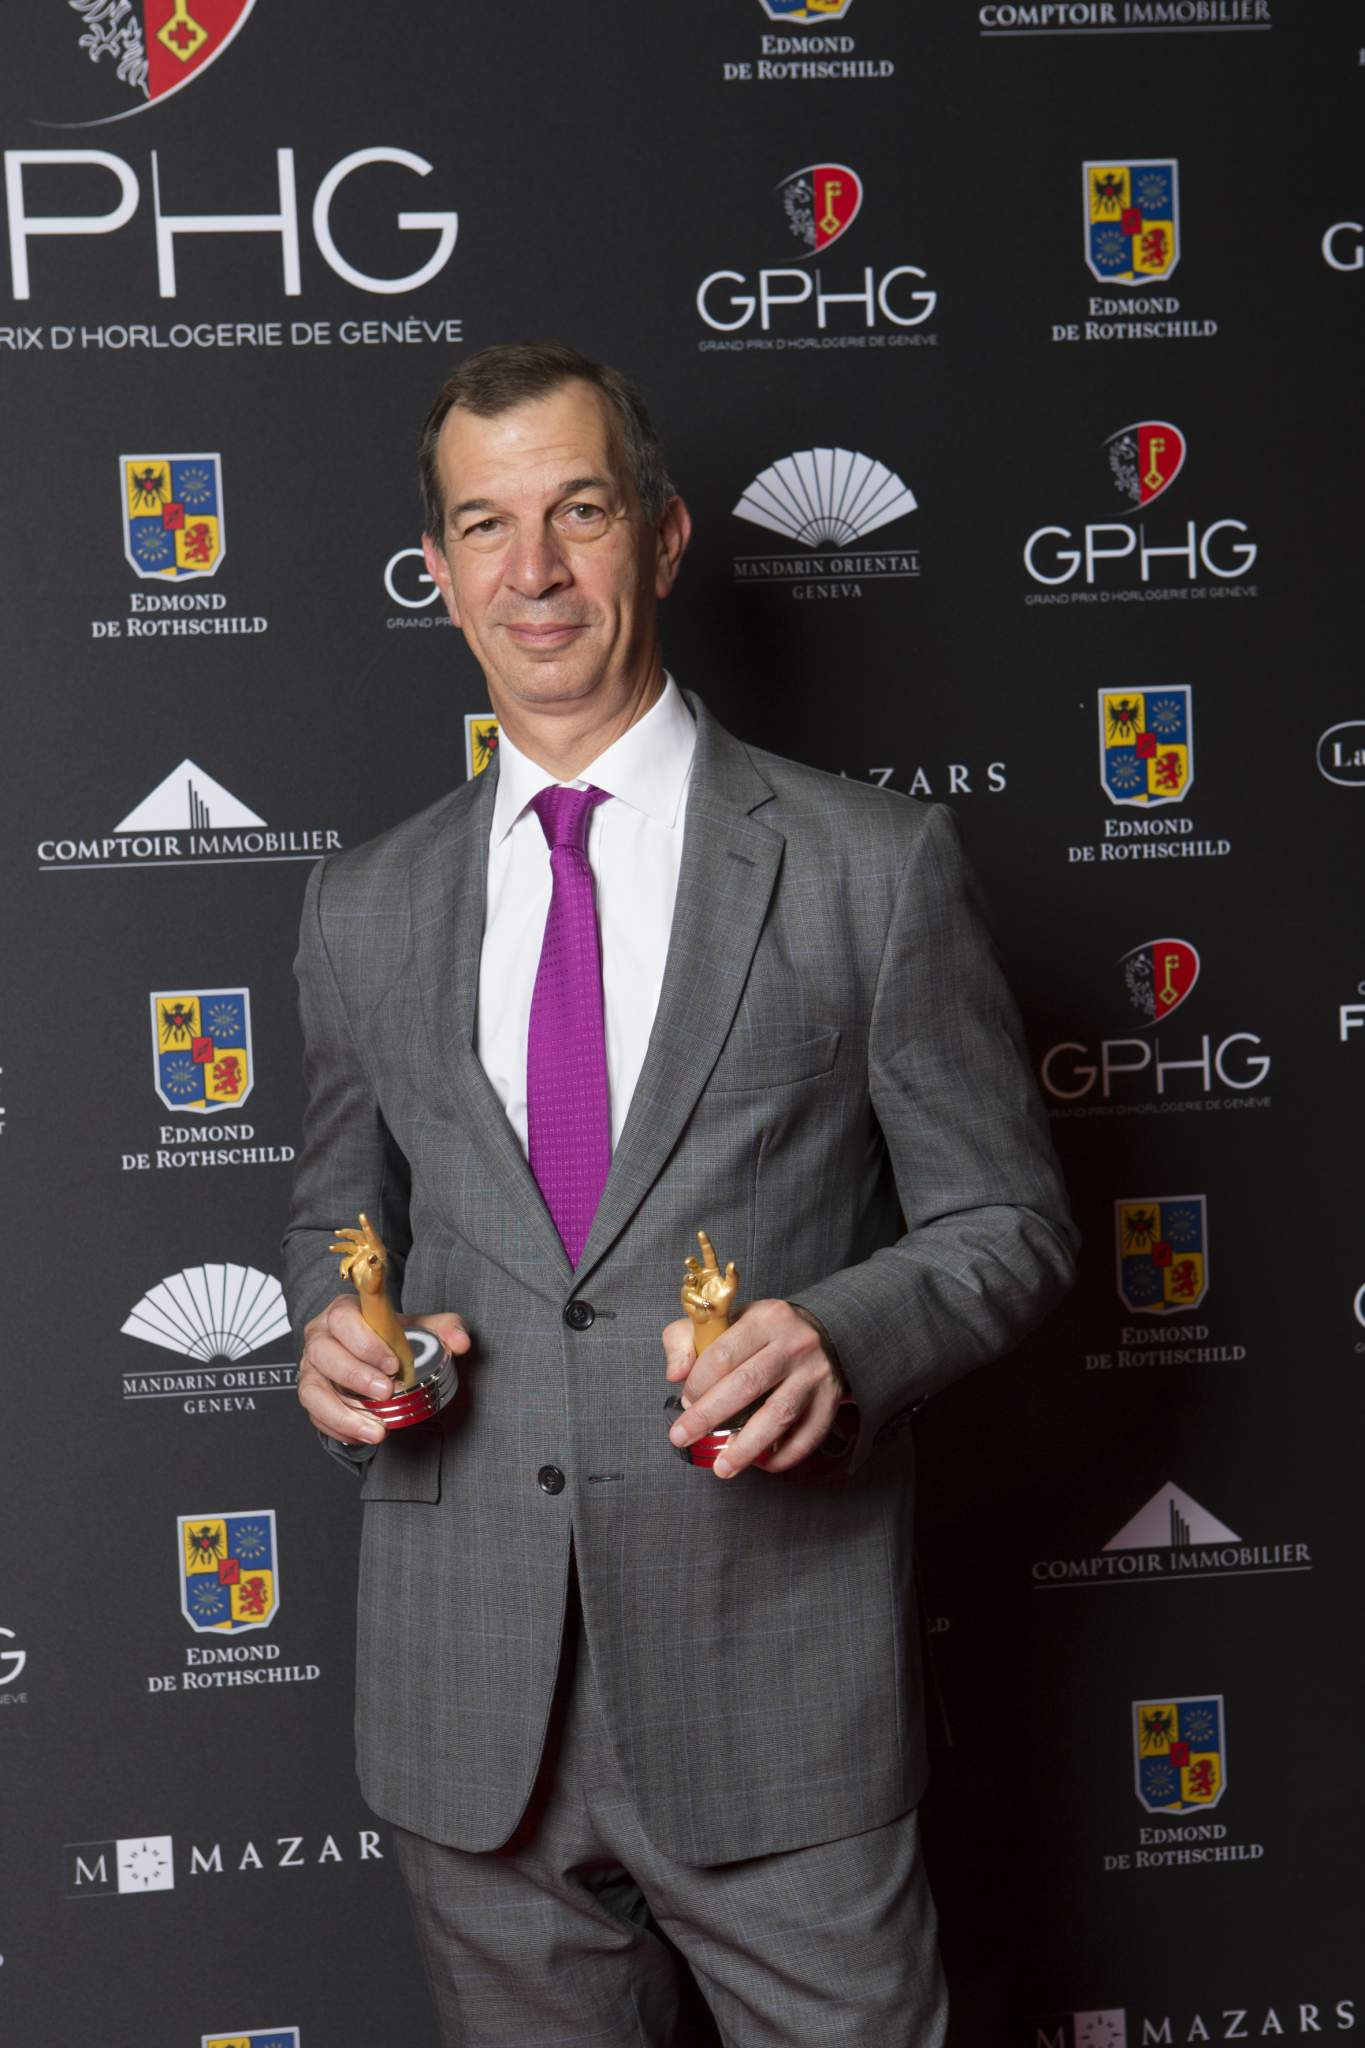 Philippe Léopold-Metzger (CEO of Piaget, winner of the Artistic Crafts Watch Prize 2016 and the Ladies' Watch Prize 2016)